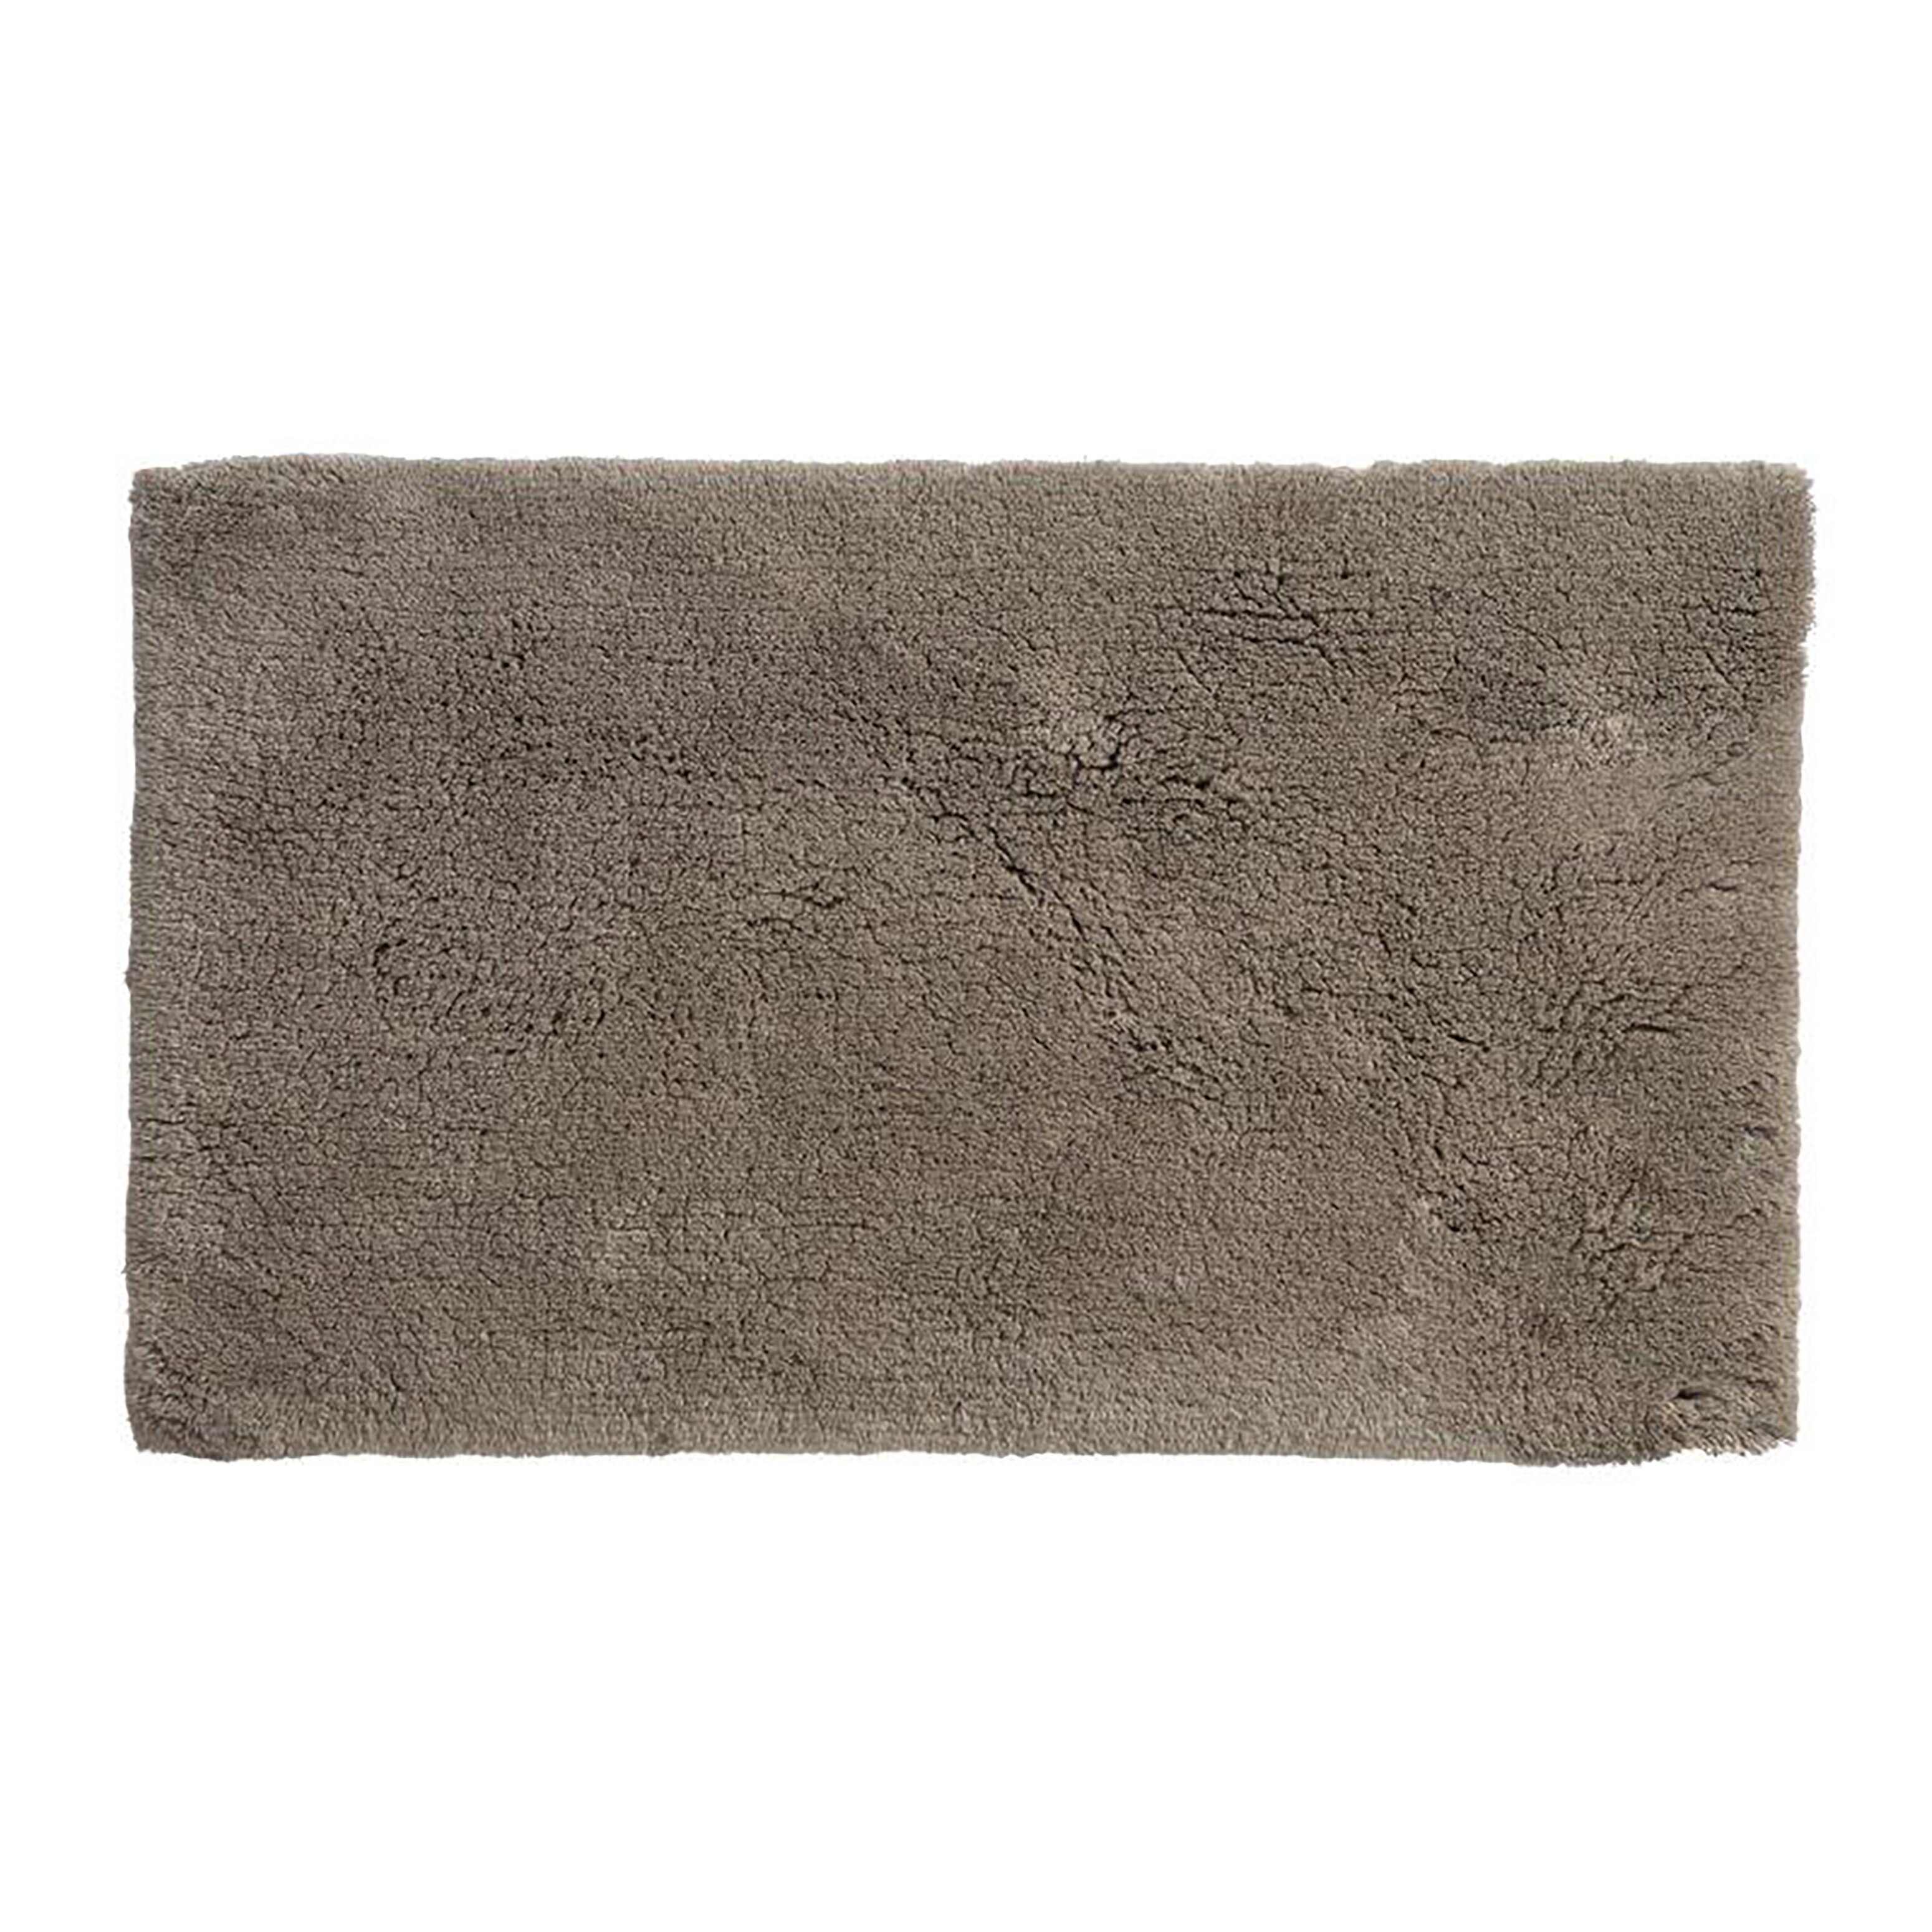 Cotton Bath Rugs Graccioza Purity Superior Cotton Bath